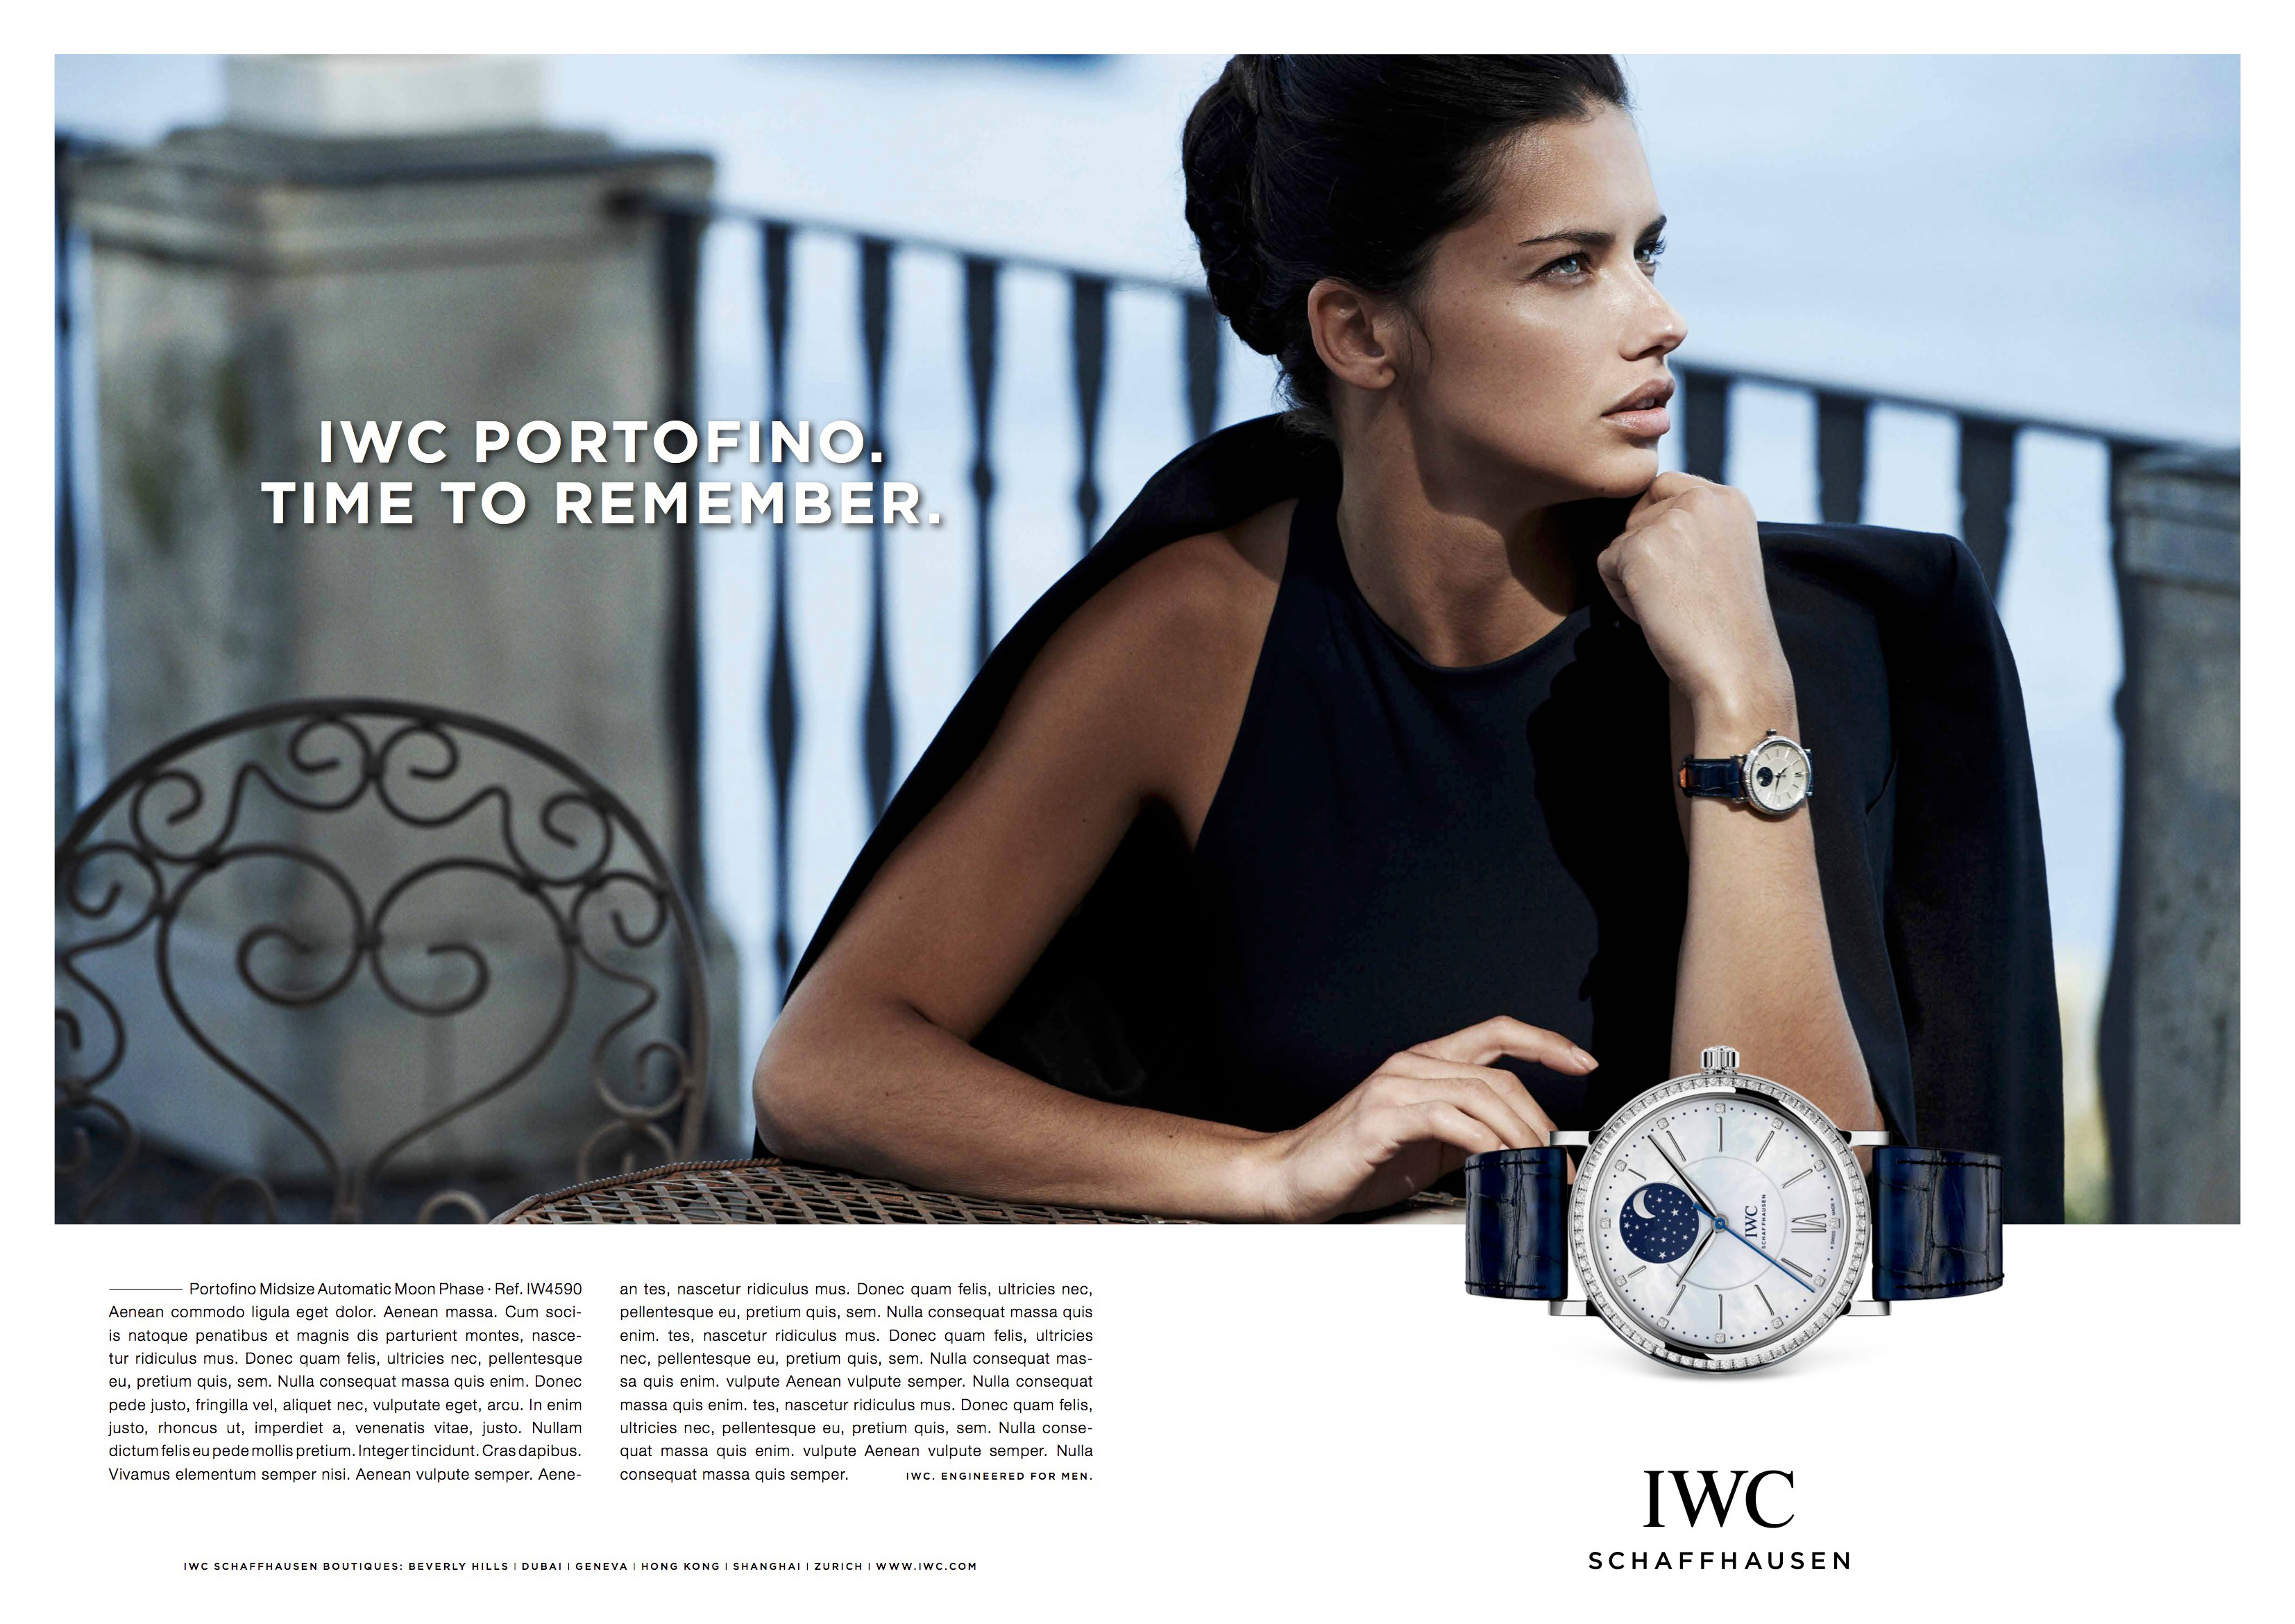 IWC/photos Peter Lindbergh